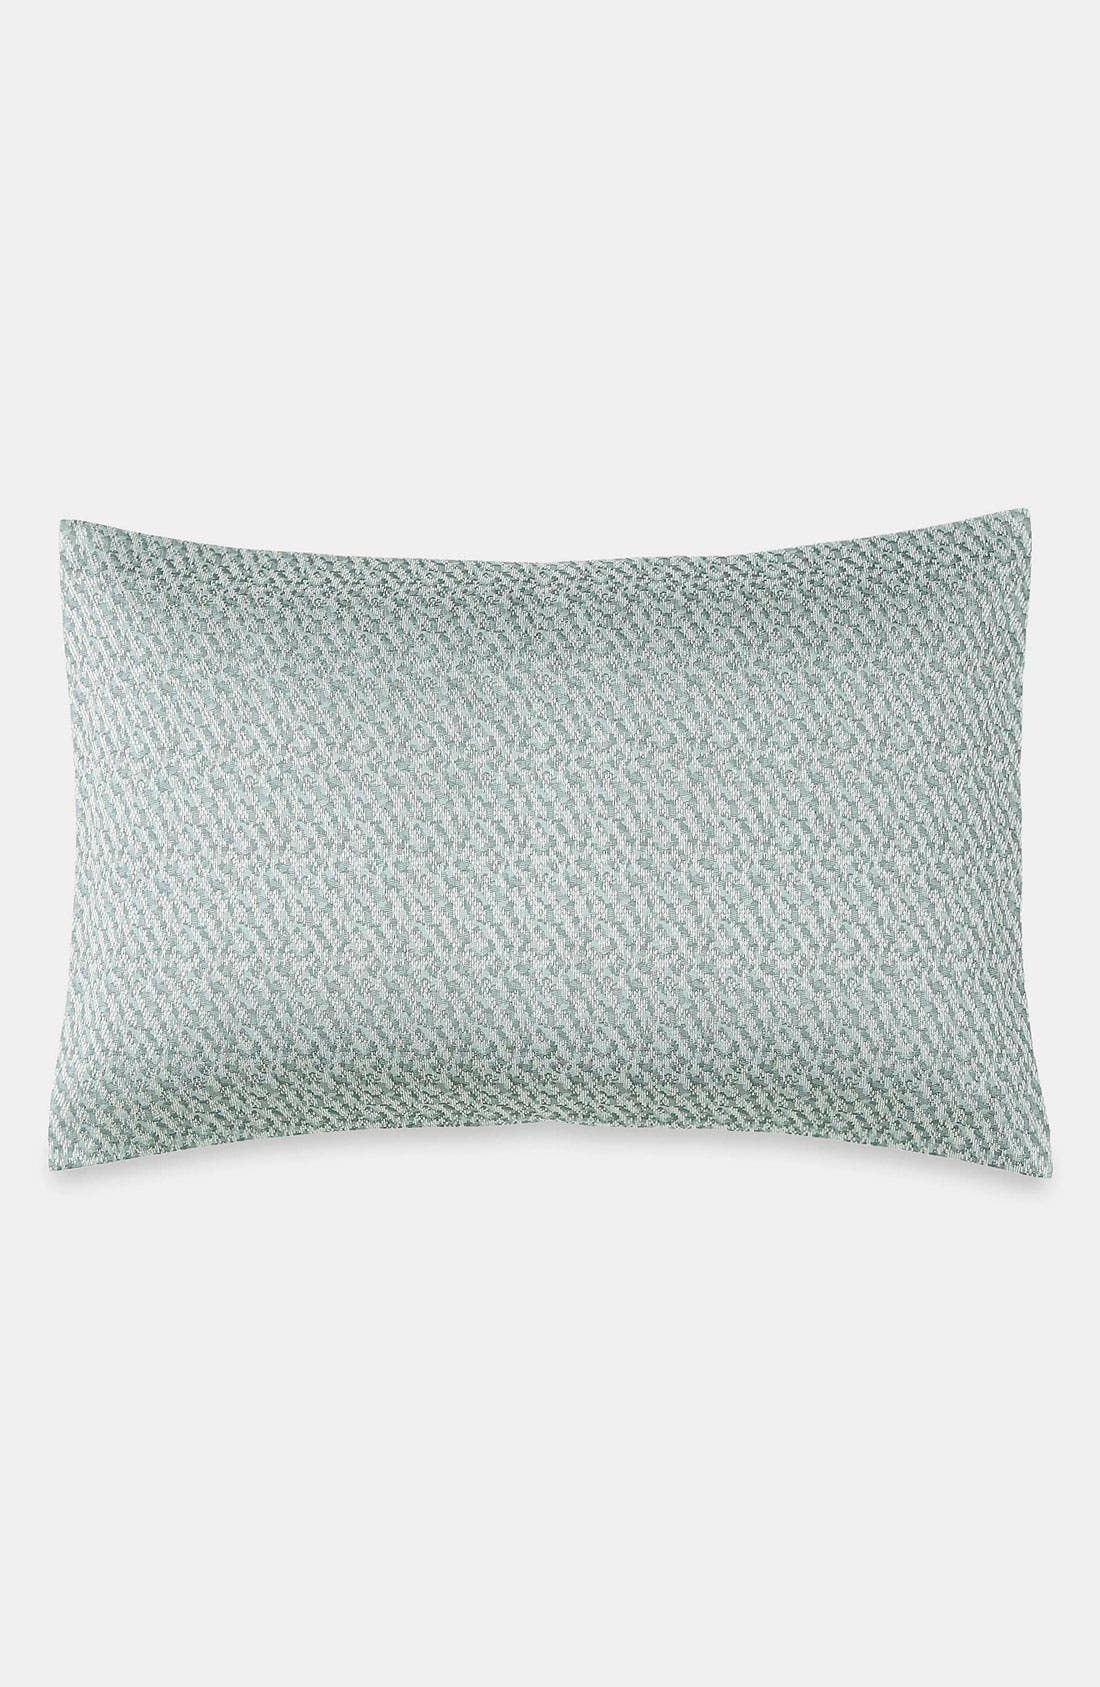 Alternate Image 1 Selected - DKNY 'Urban Space' Jacquard Pillow Sham